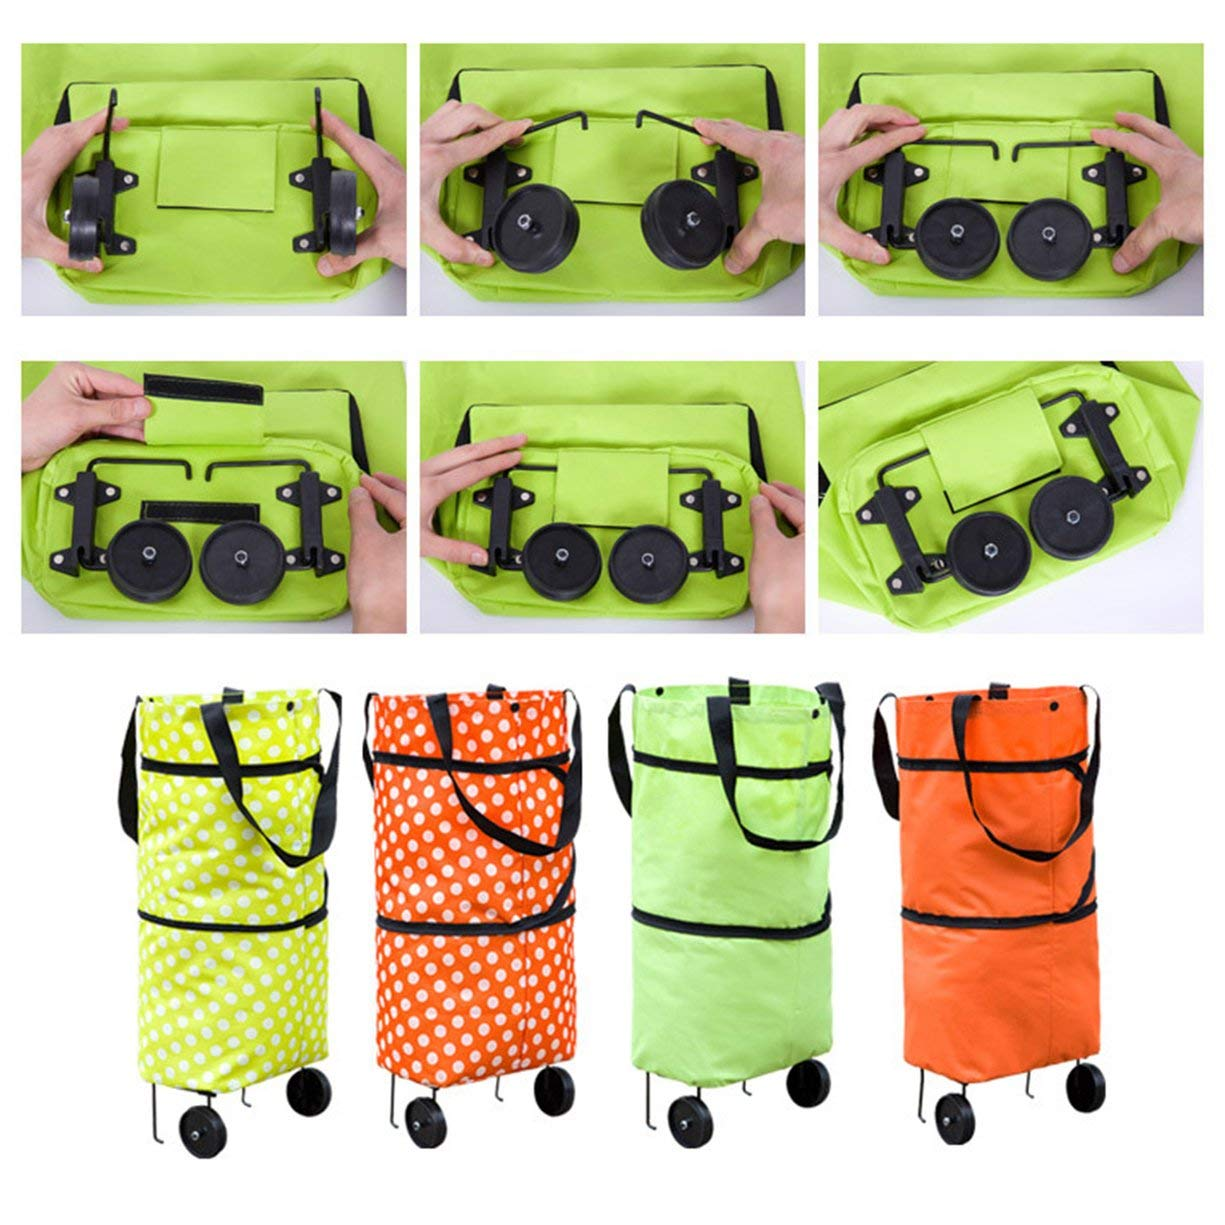 Shopping Trolley Wheel Bag,Fashionable Design Large Capacity Waterproof Oxford Cloth Foldable Shopping Trolley Wheel Bag Traval Cart Luggage Bag by Detectoy (Image #3)